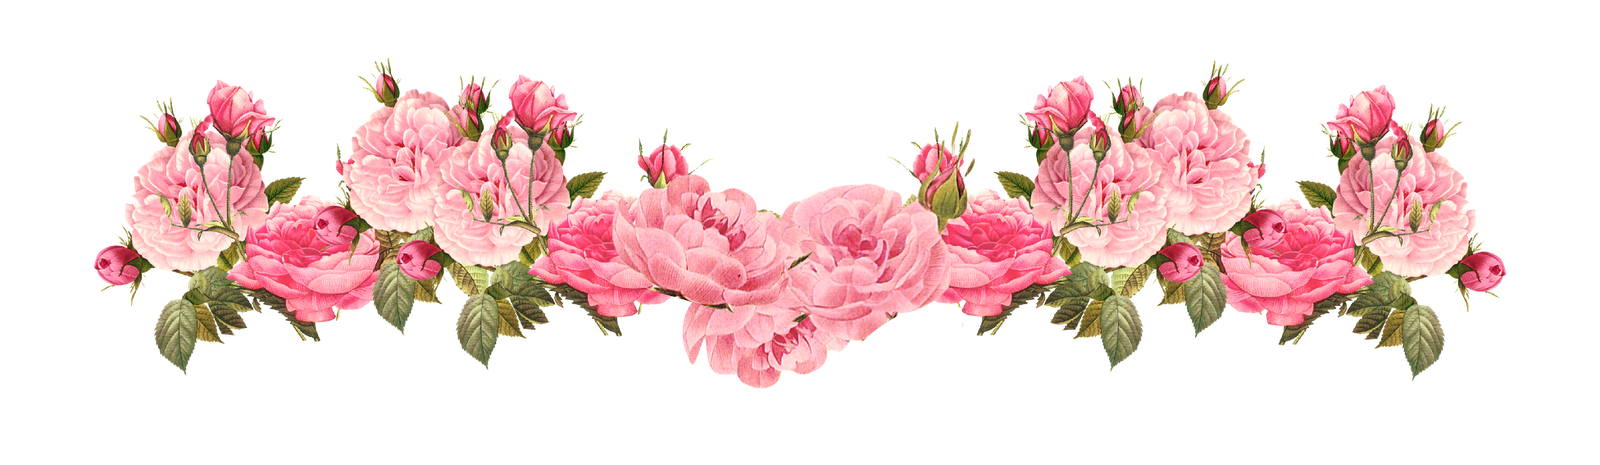 Peony Border Background Png - Clipart borders peony, Clipart borders peony Transparent FREE for ...